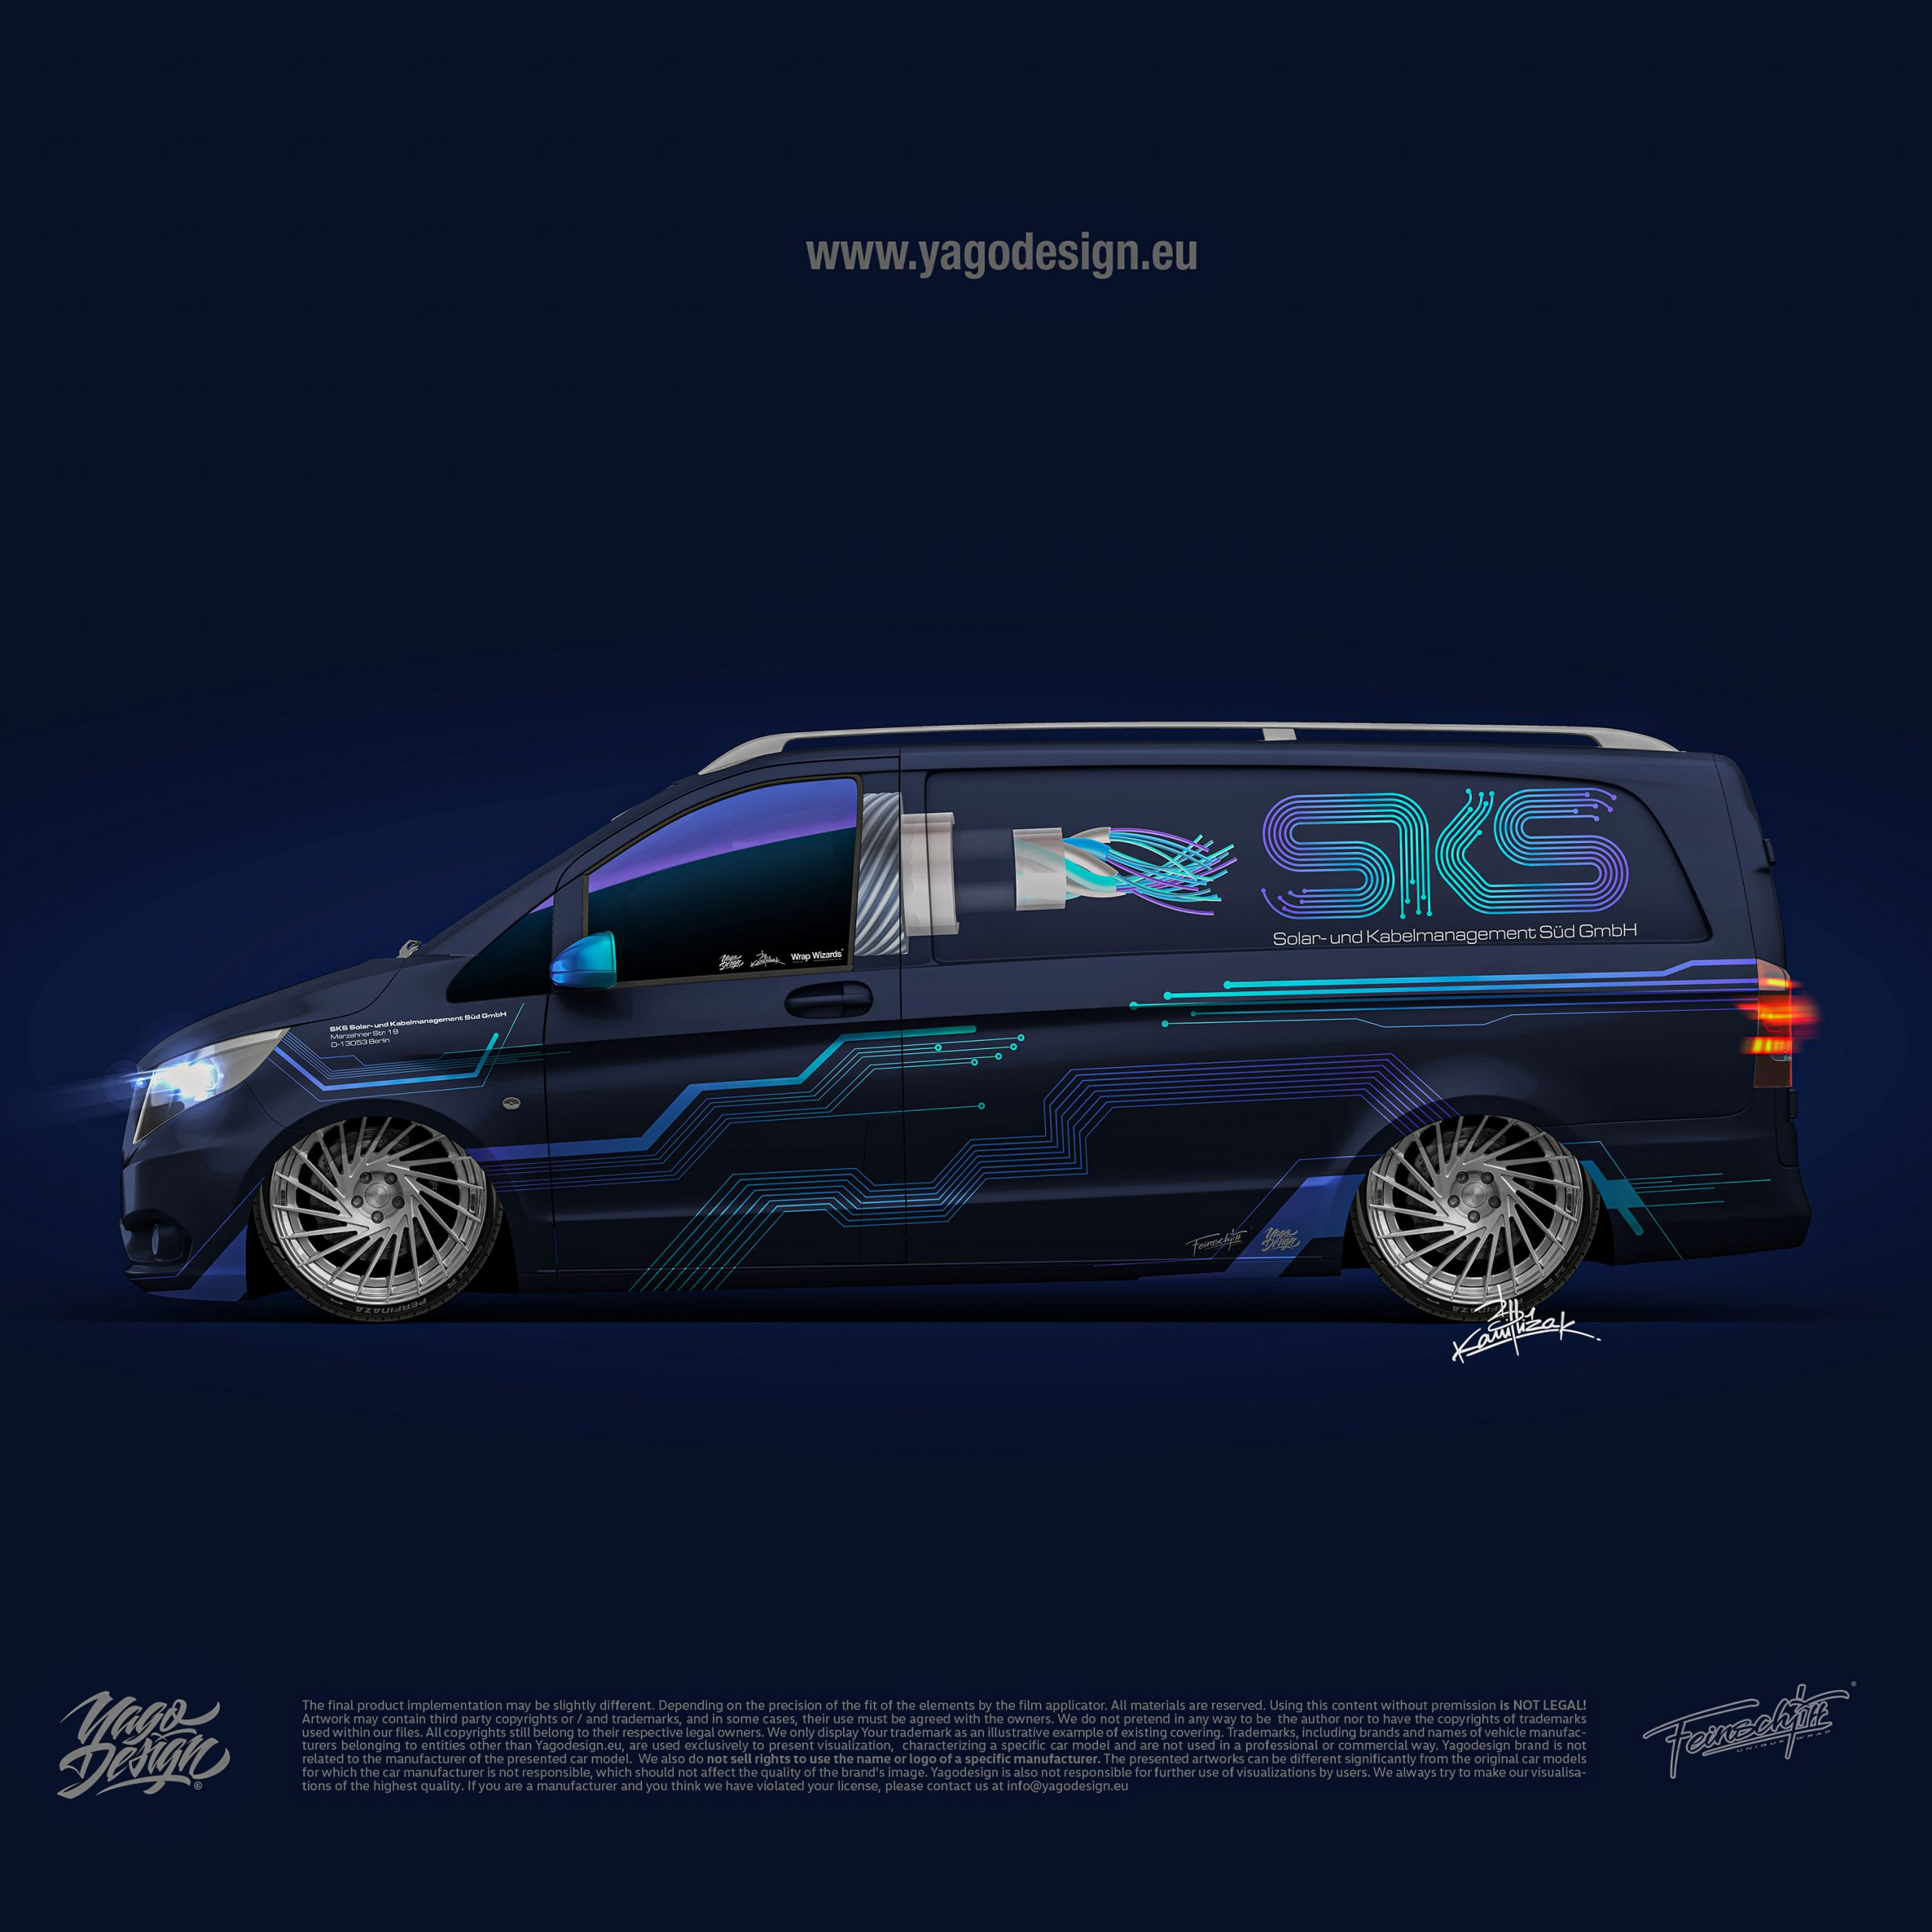 Mercedes-Benz-Vito-Panel-Van-by-Yagodesign-Automotive-Design-Studio-Side-View-scaled